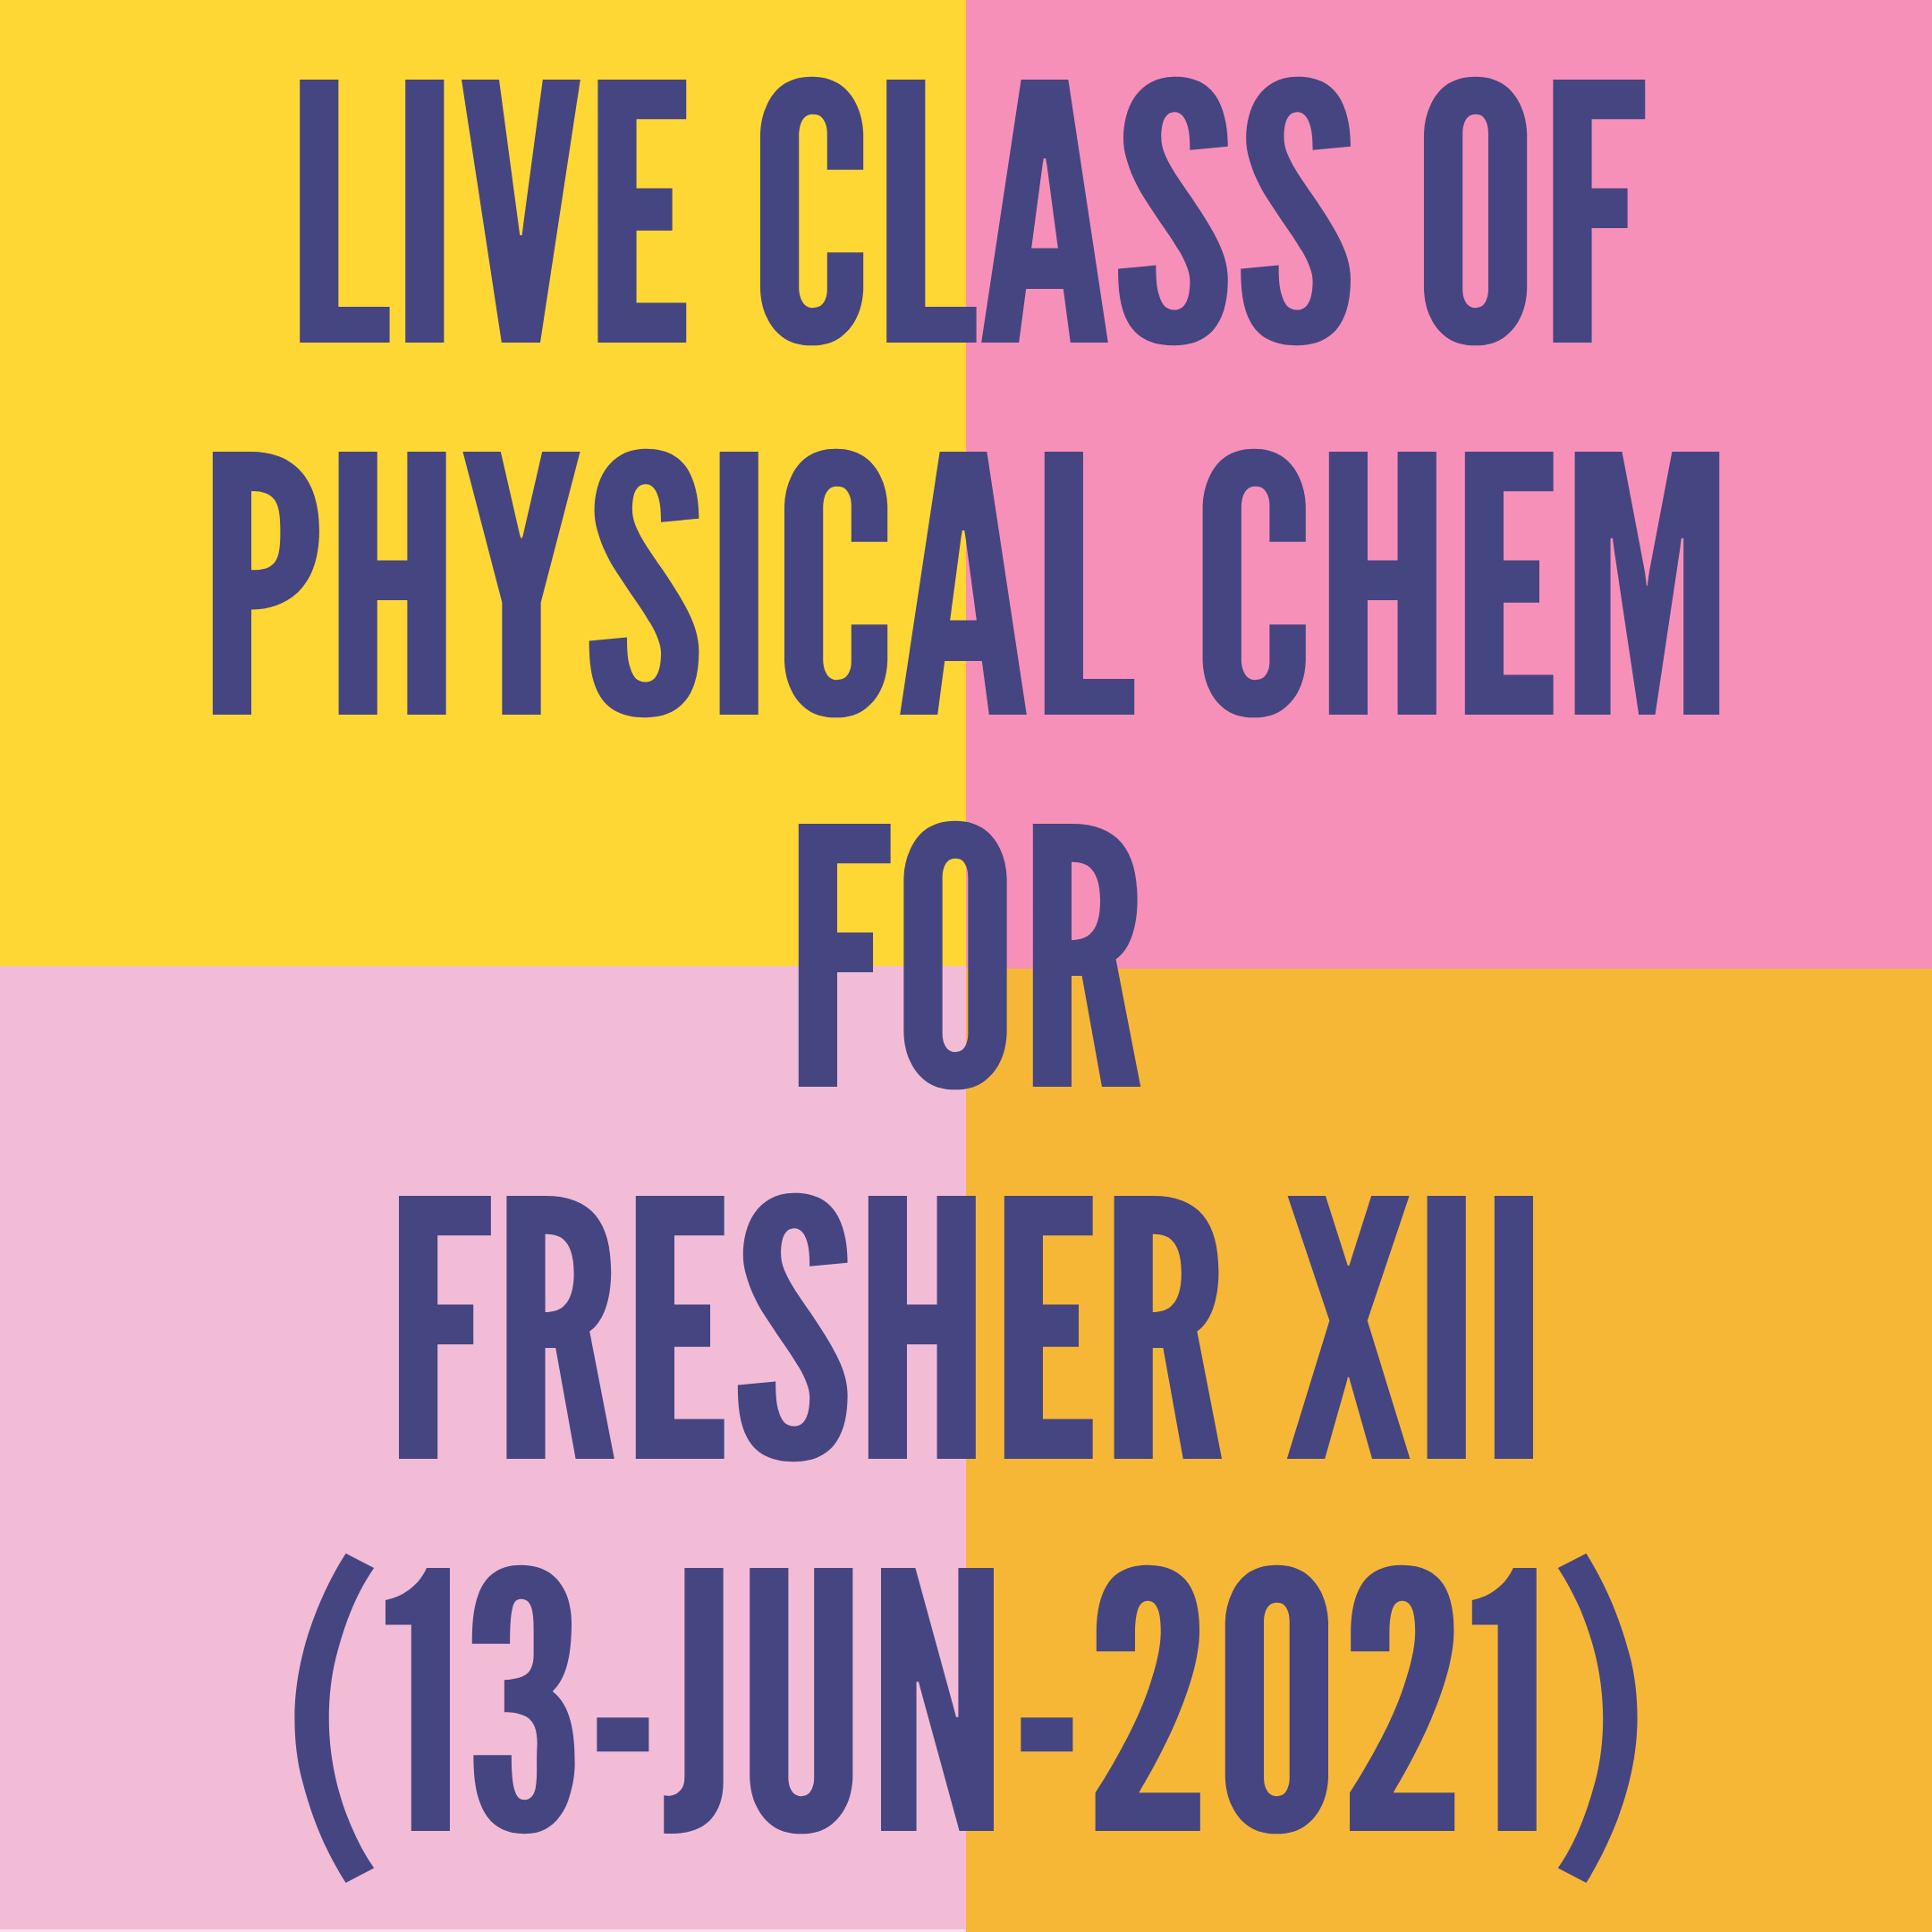 LIVE CLASS OF PHYSICAL CHEMISTRY FOR FRESHER XII (13-JUN-2021) SOLUTIONS